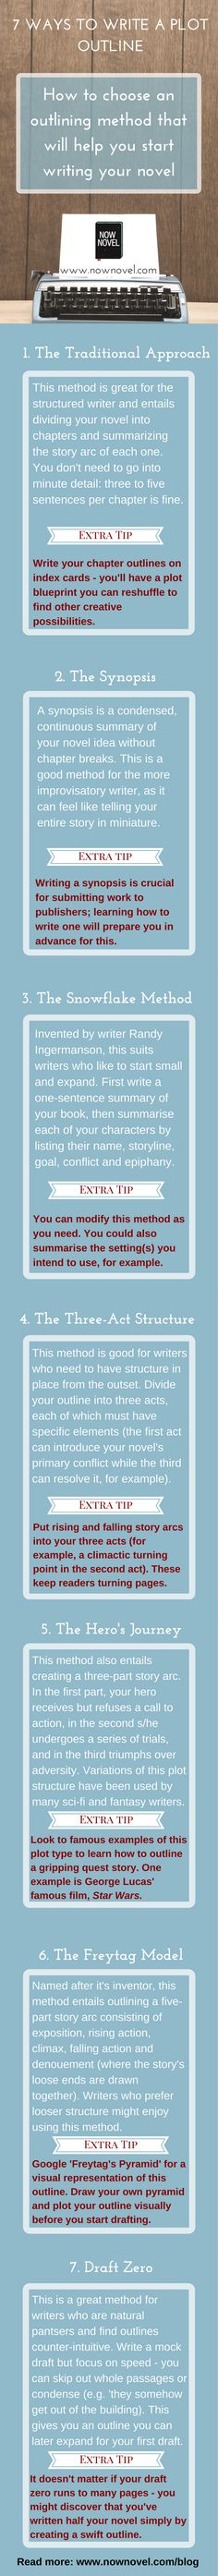 7 ways to write a plot outline: The Infographic